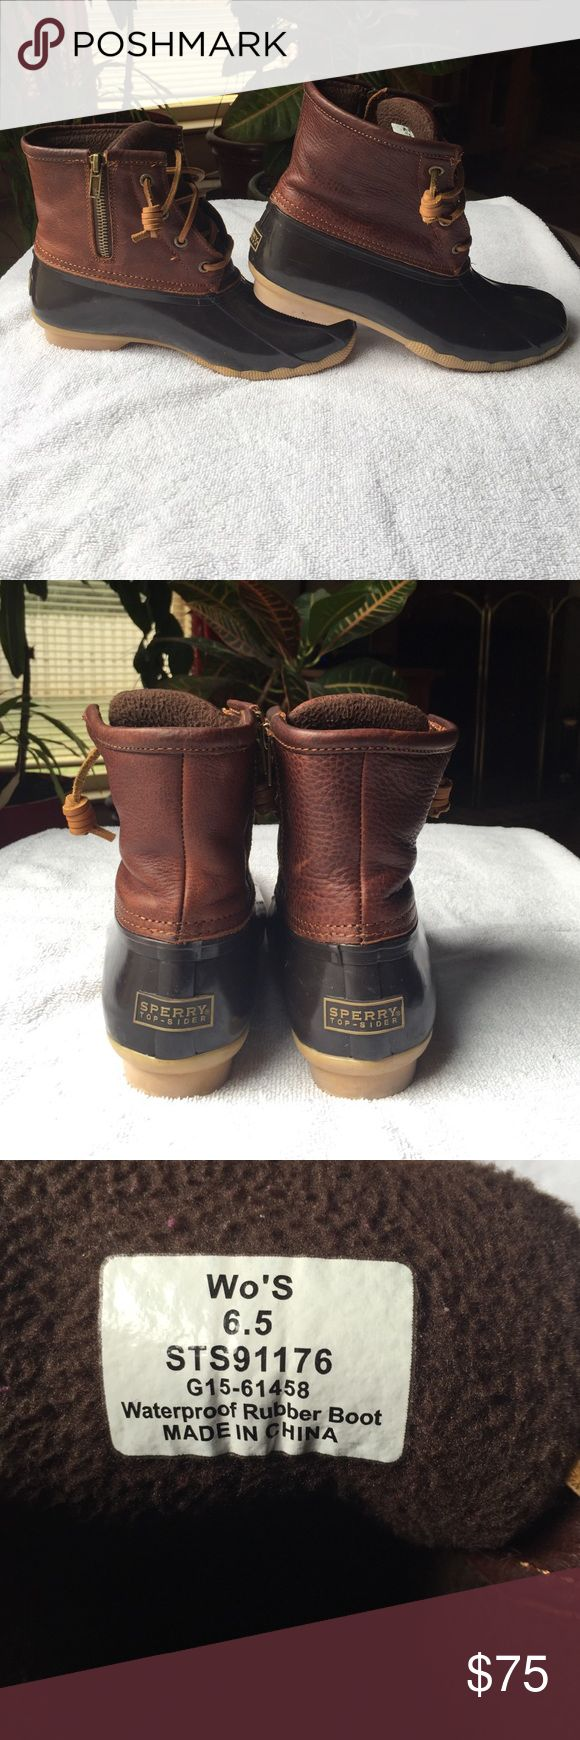 Sperry Women's Duck Boots Good condition, been worn maybe 15 times. Bought them in January 2016. Very comfy! Sperry Top-Sider Shoes Winter & Rain Boots